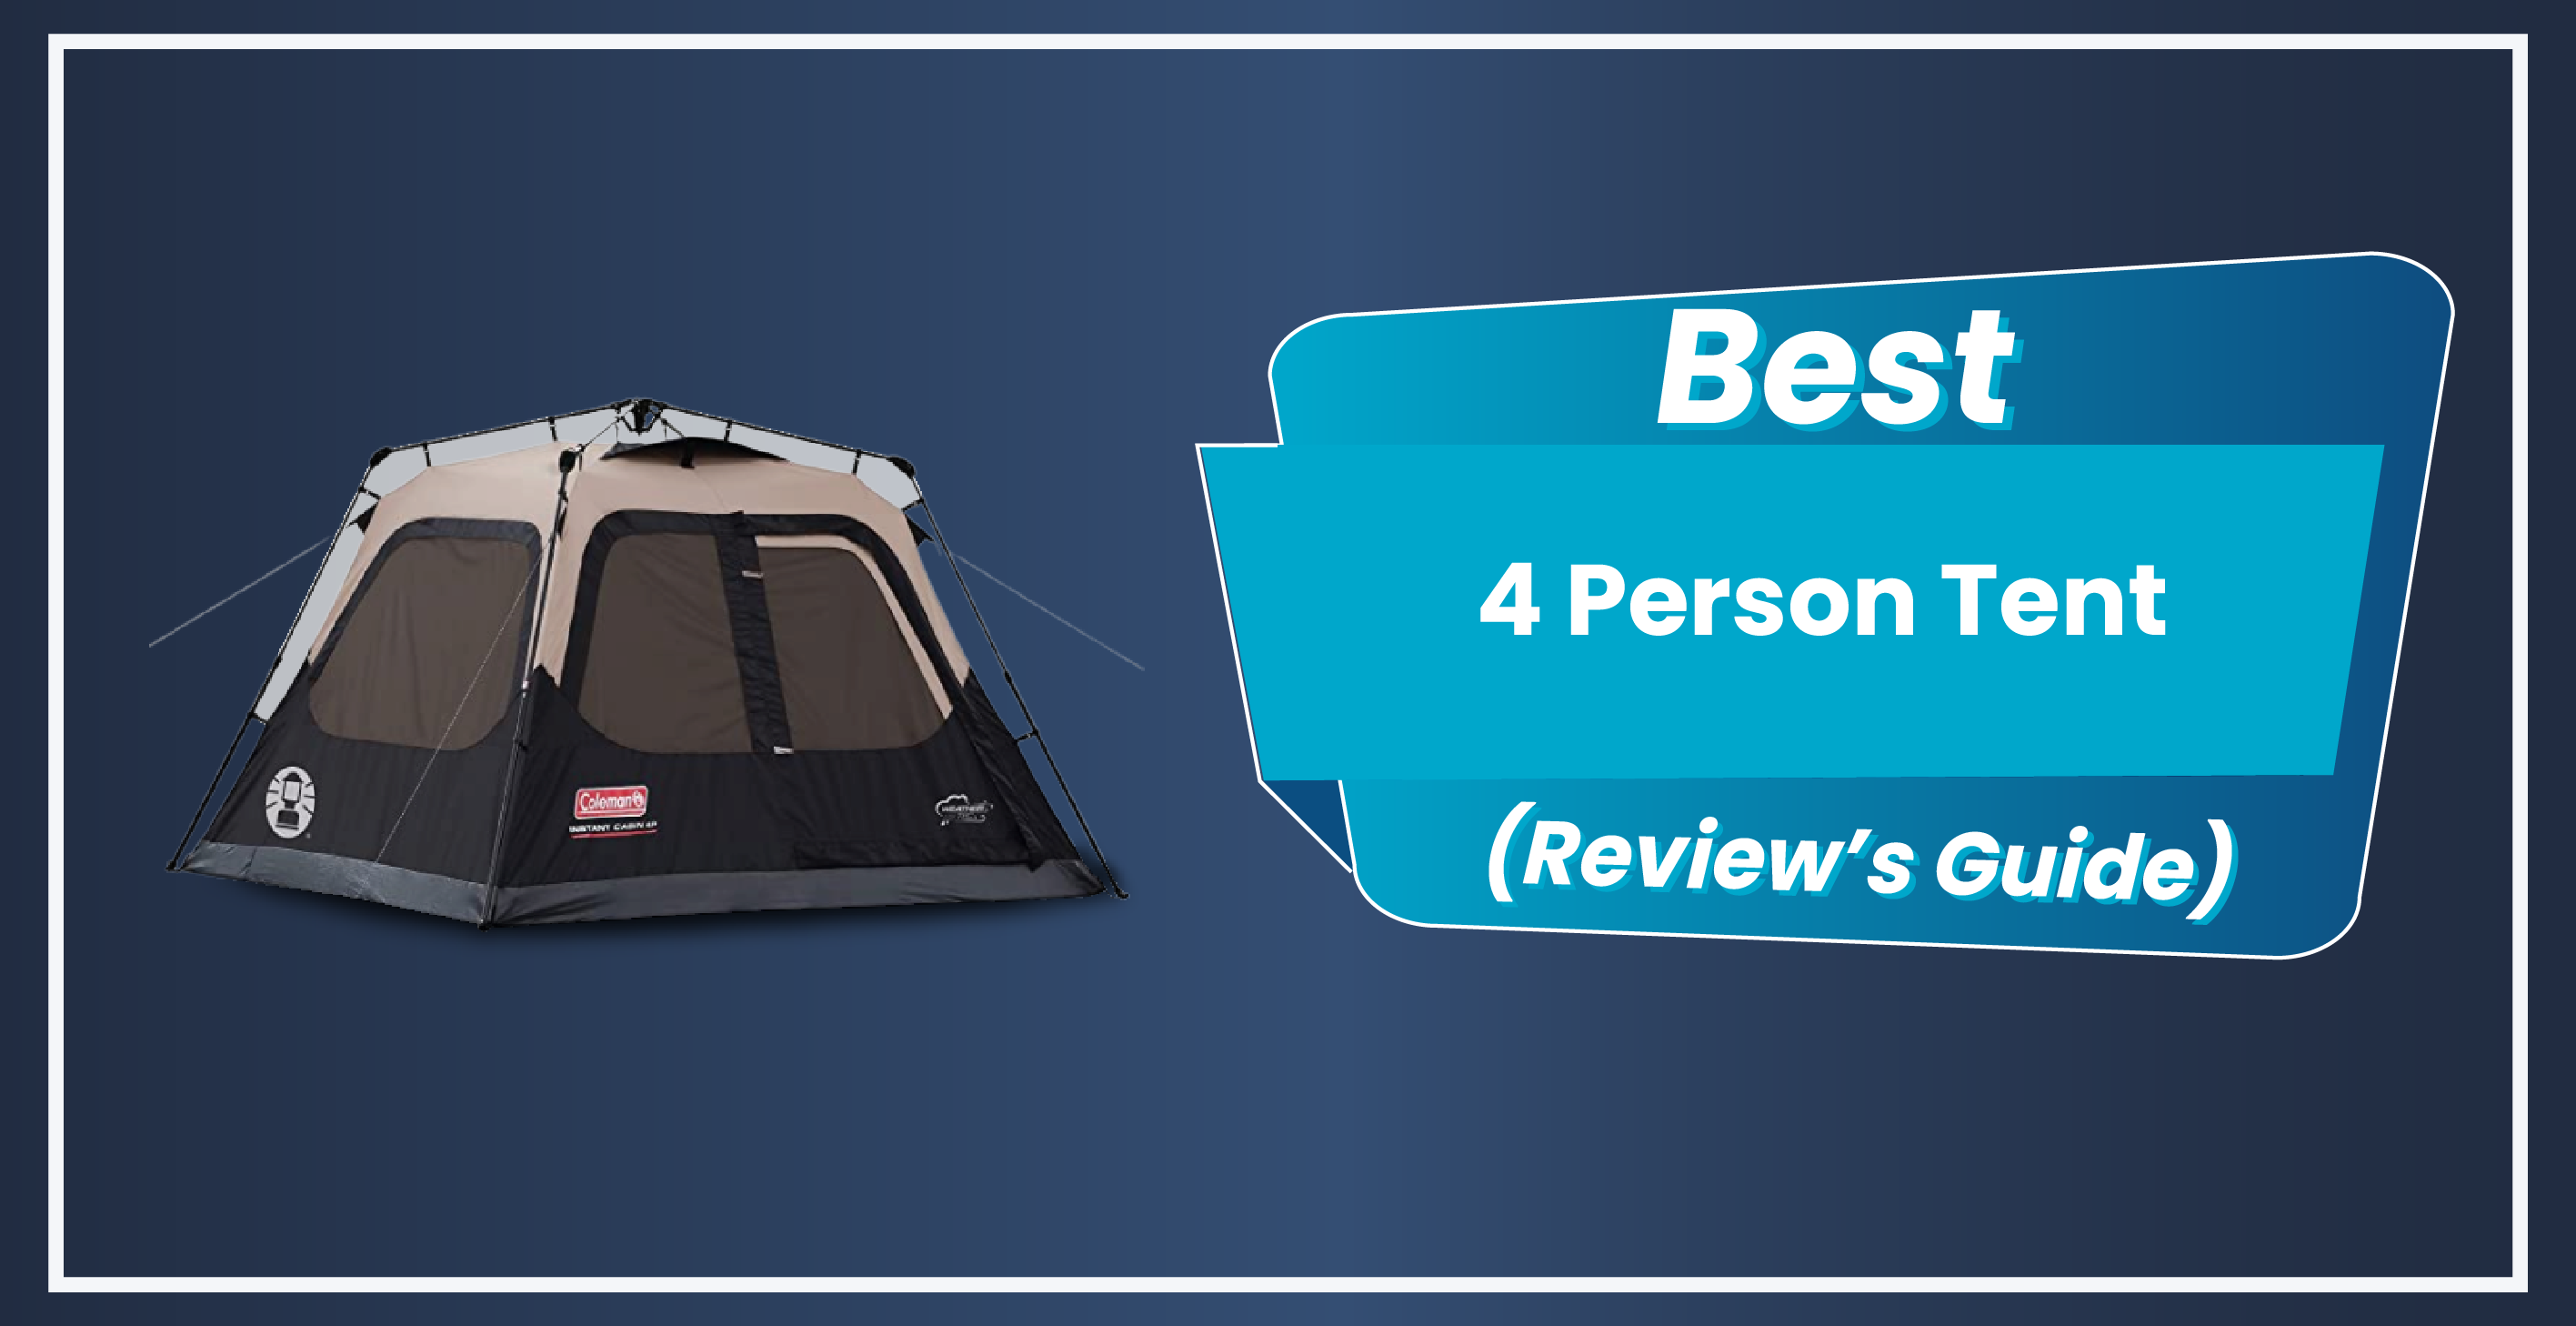 6 Best 4 Person Tent